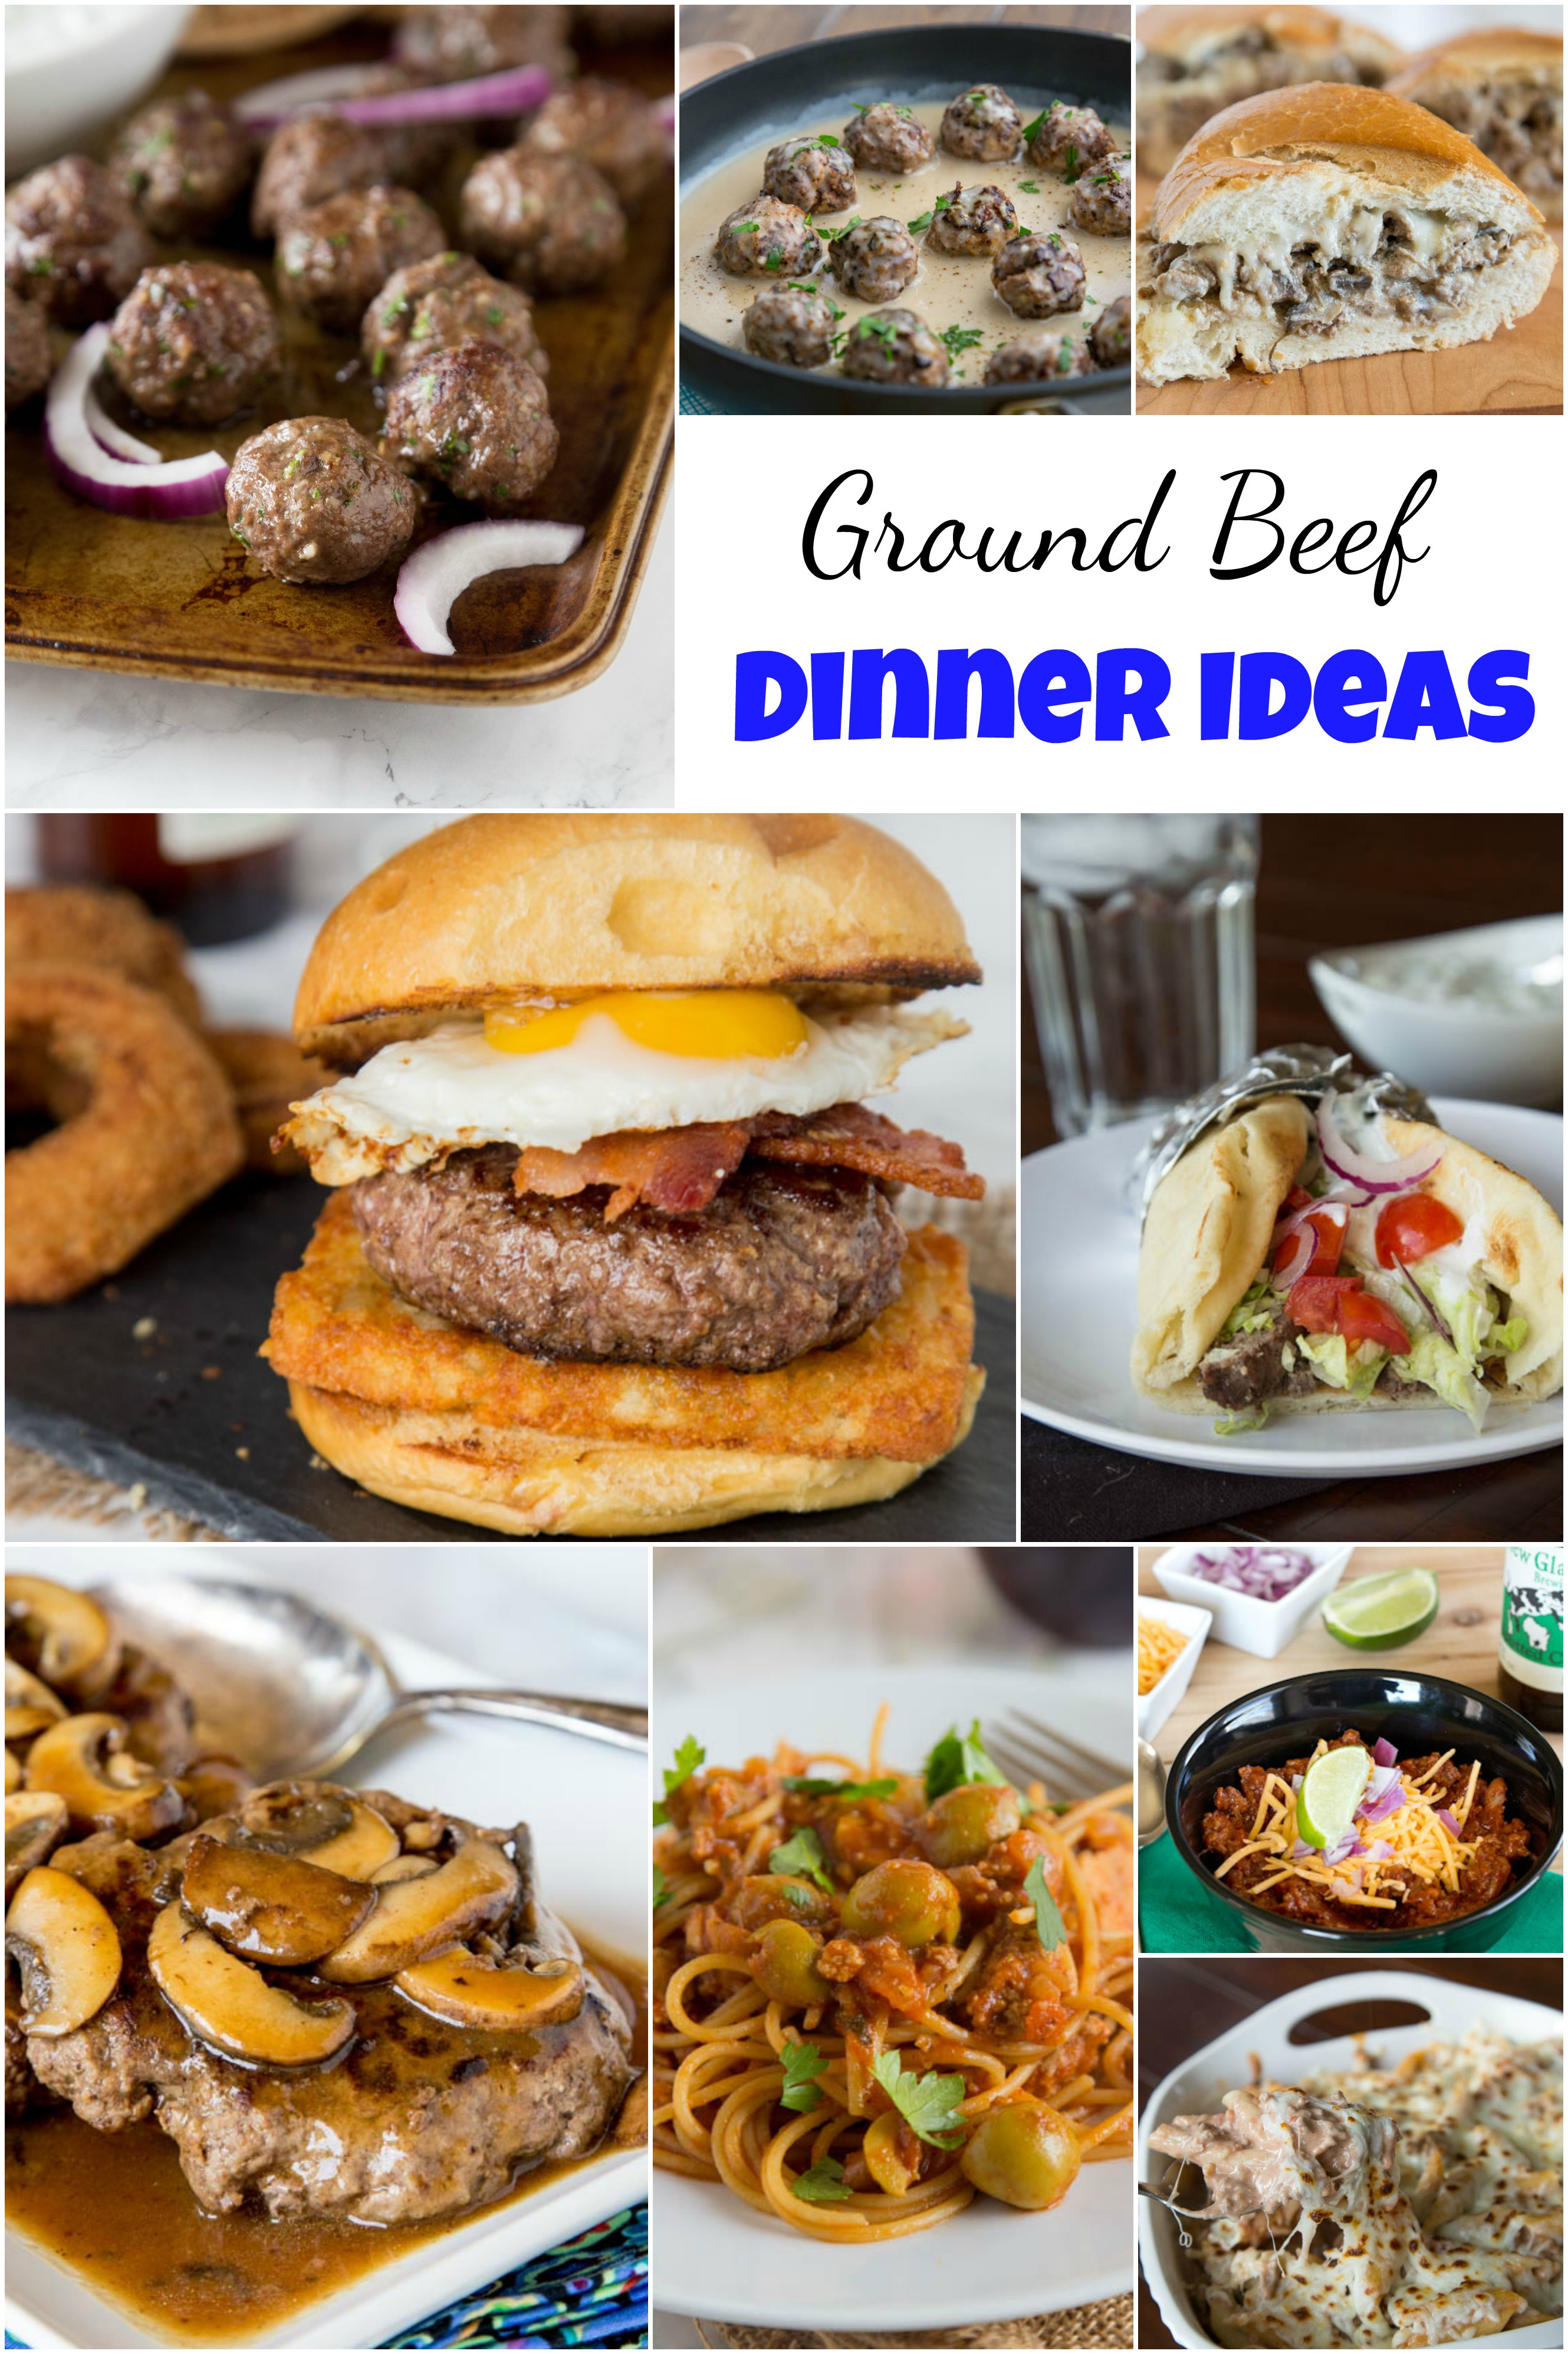 Ground Beef Ideas  Ground Beef Dinner Ideas Dinners Dishes and Desserts